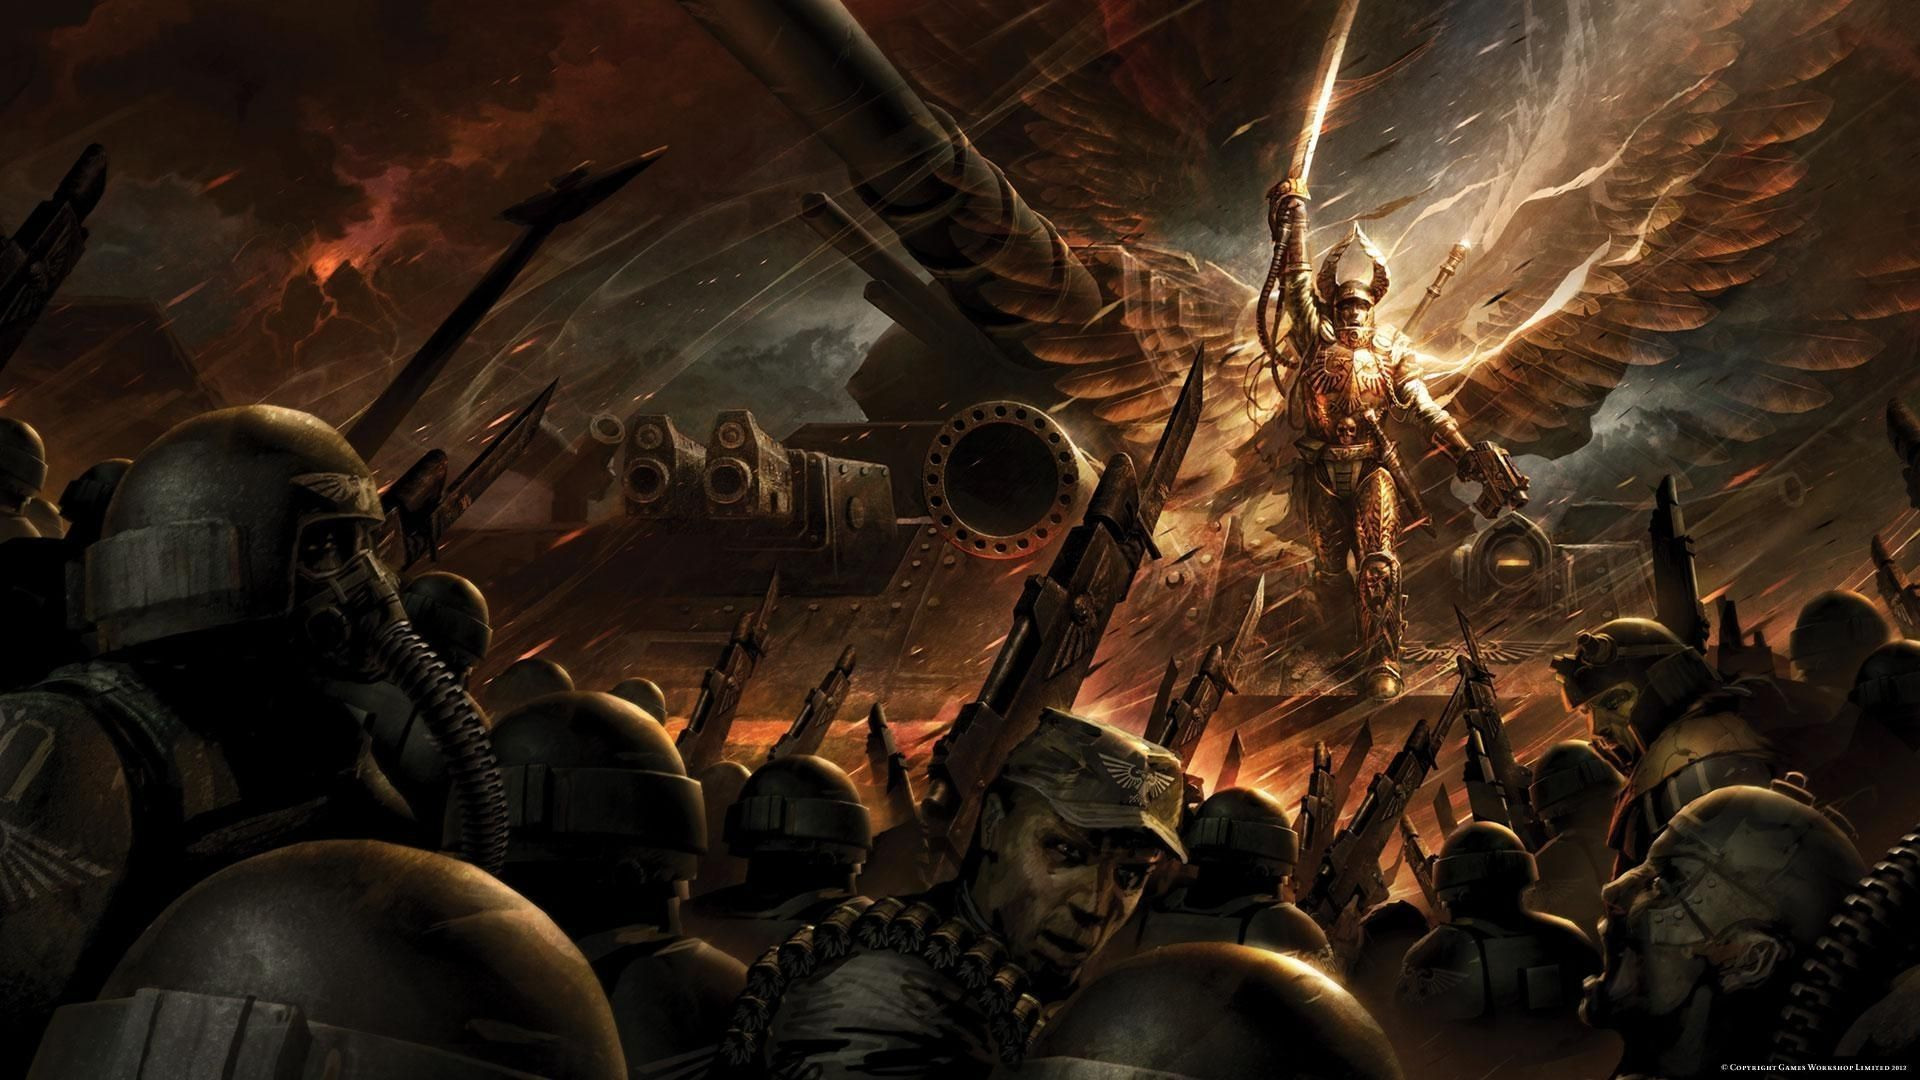 10 Top Warhammer 40k Desktop Wallpaper Full Hd 1920 1080 For Pc Desktop Warhammer 40k Artwork Warhammer 40k Warhammer